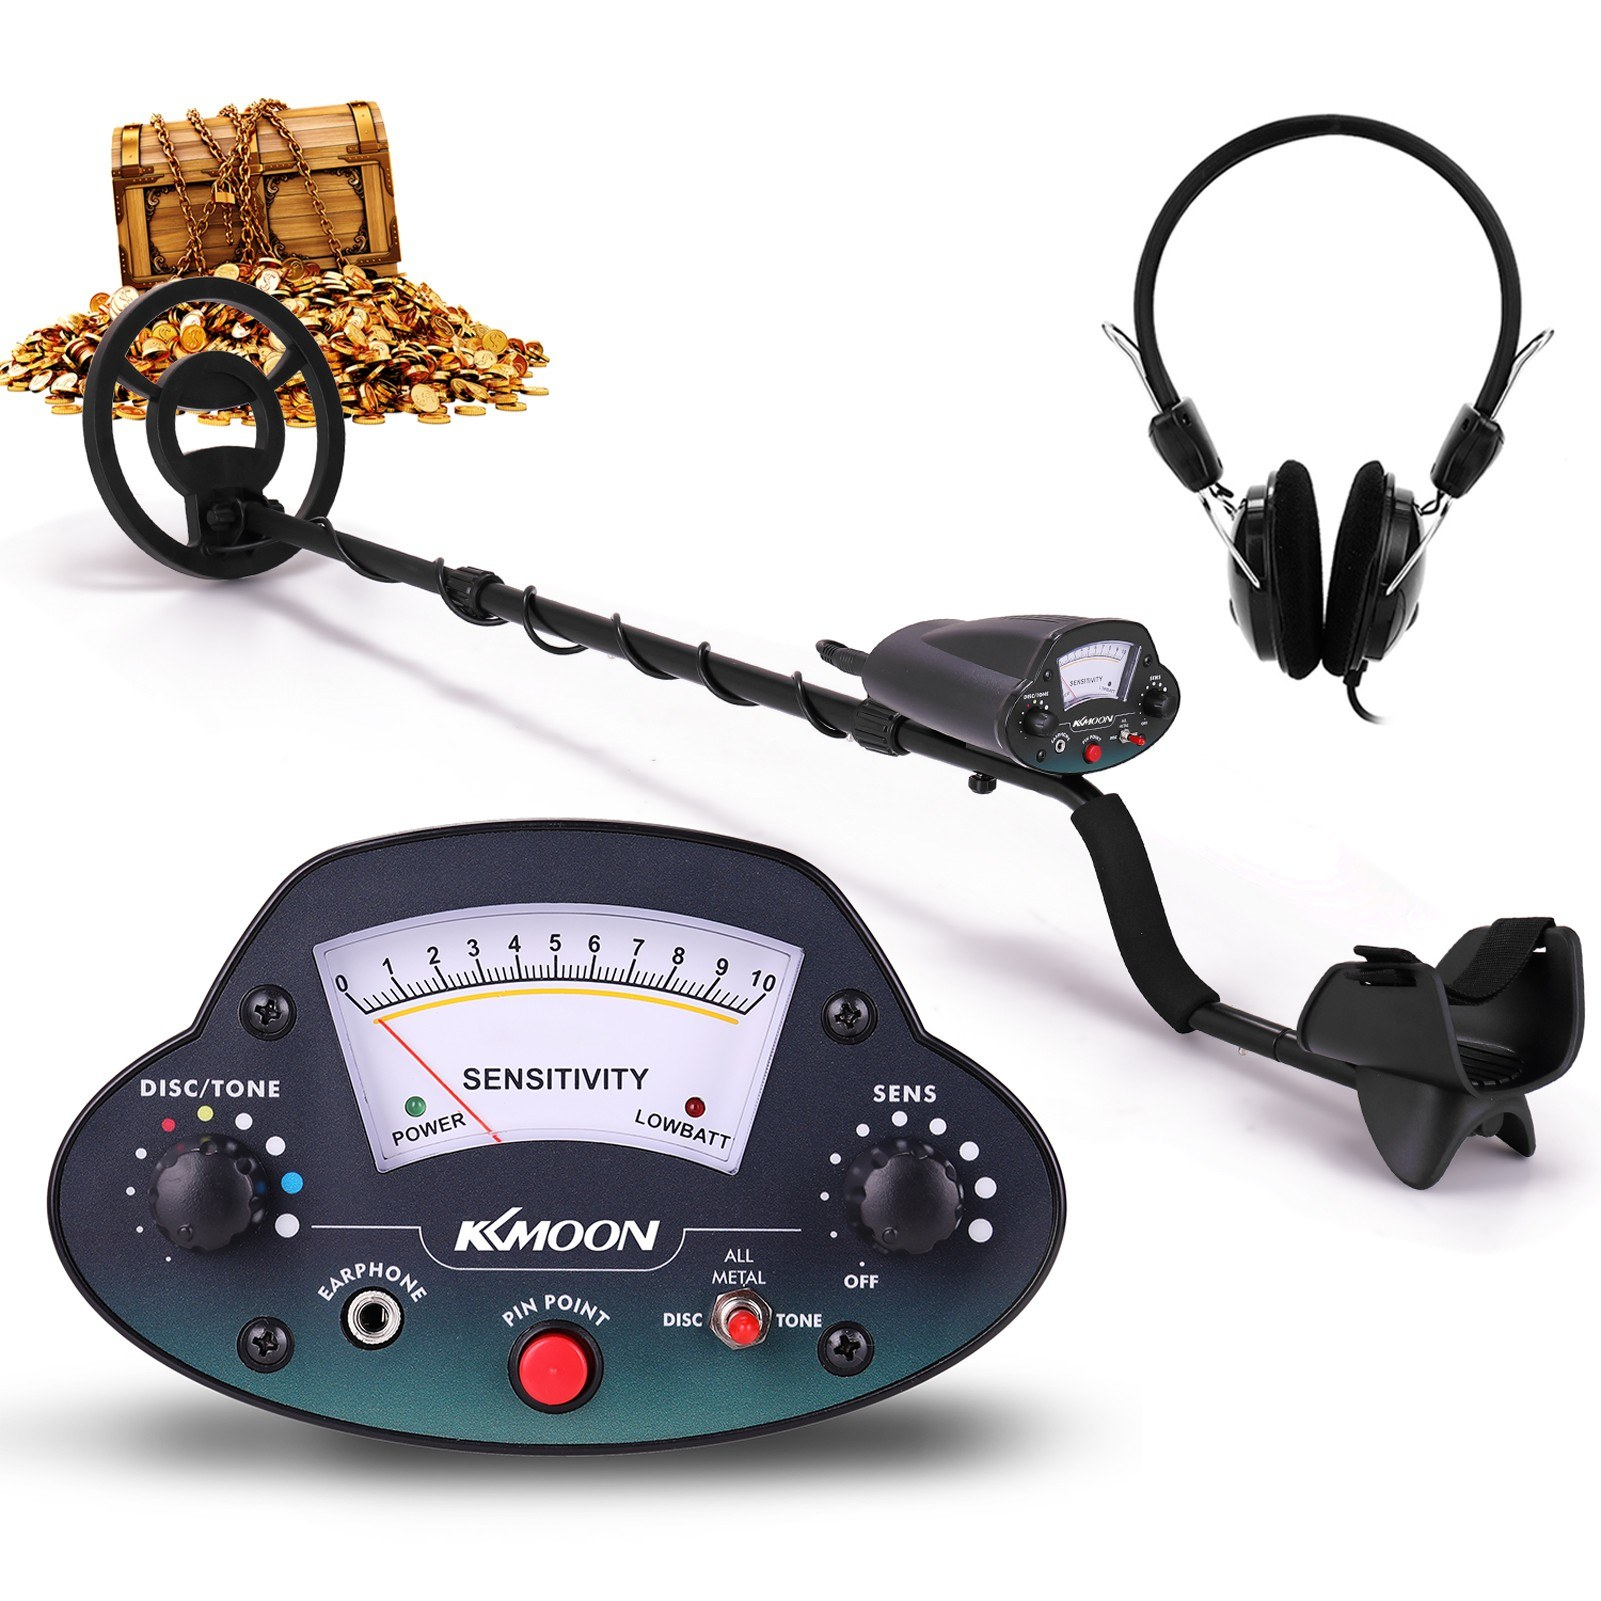 Tomtop - [EU Warehouse] 53% OFF KKmoon MD-5070 8.7 Inch Waterproof Search Coil Handheld Portable Metal Detector, Free Shipping $88.99